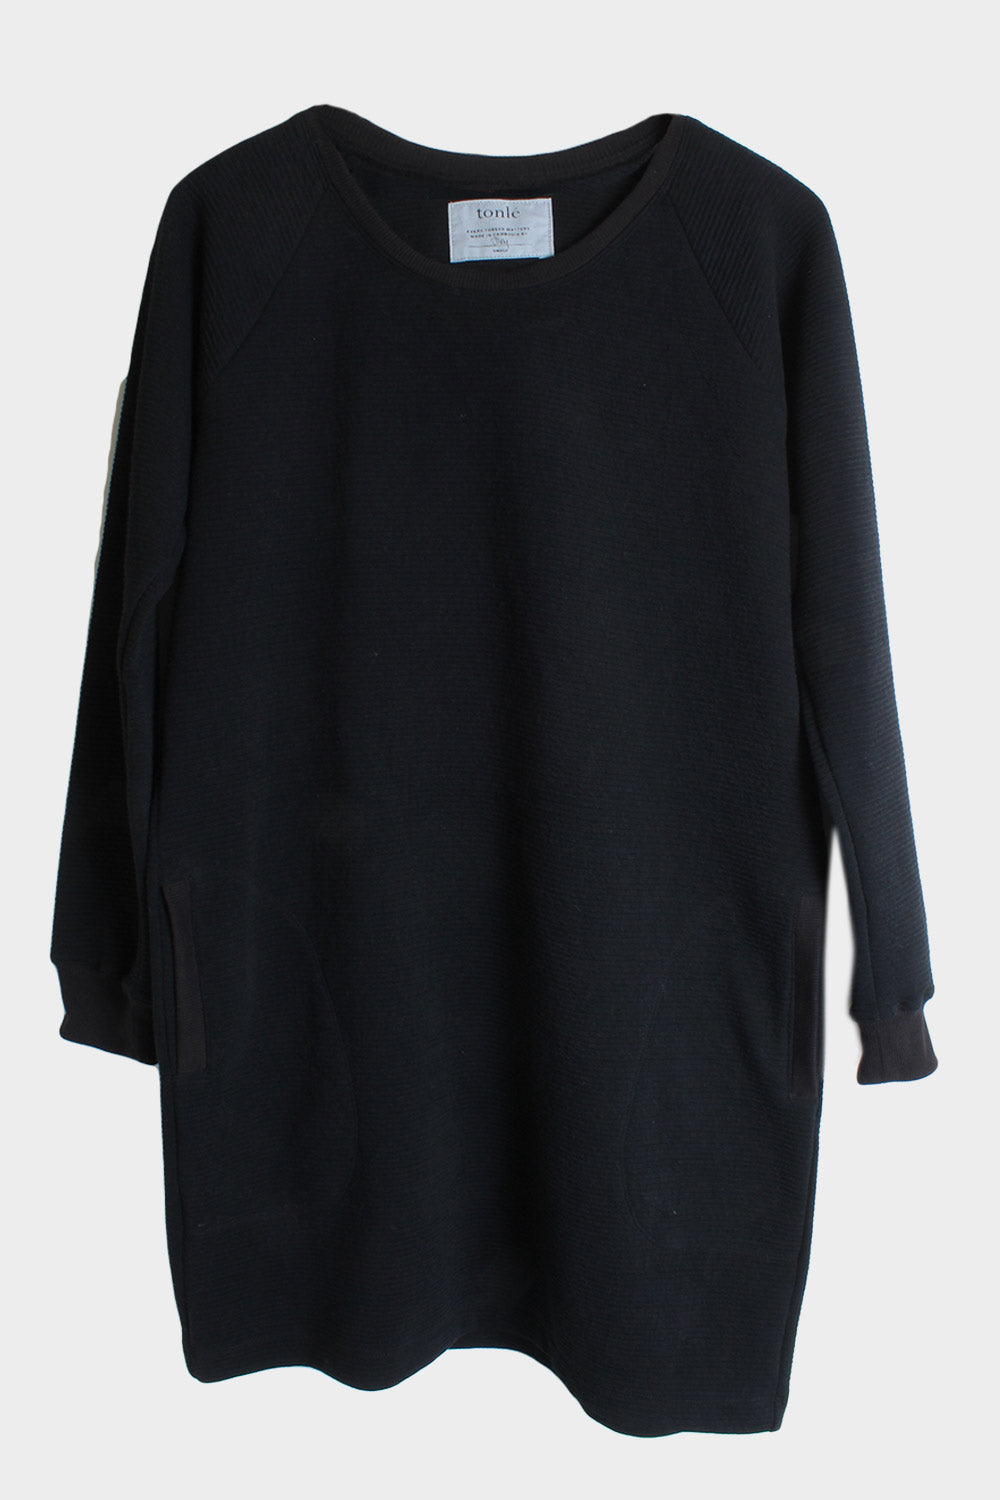 tonle zero waste sweatshirt dress